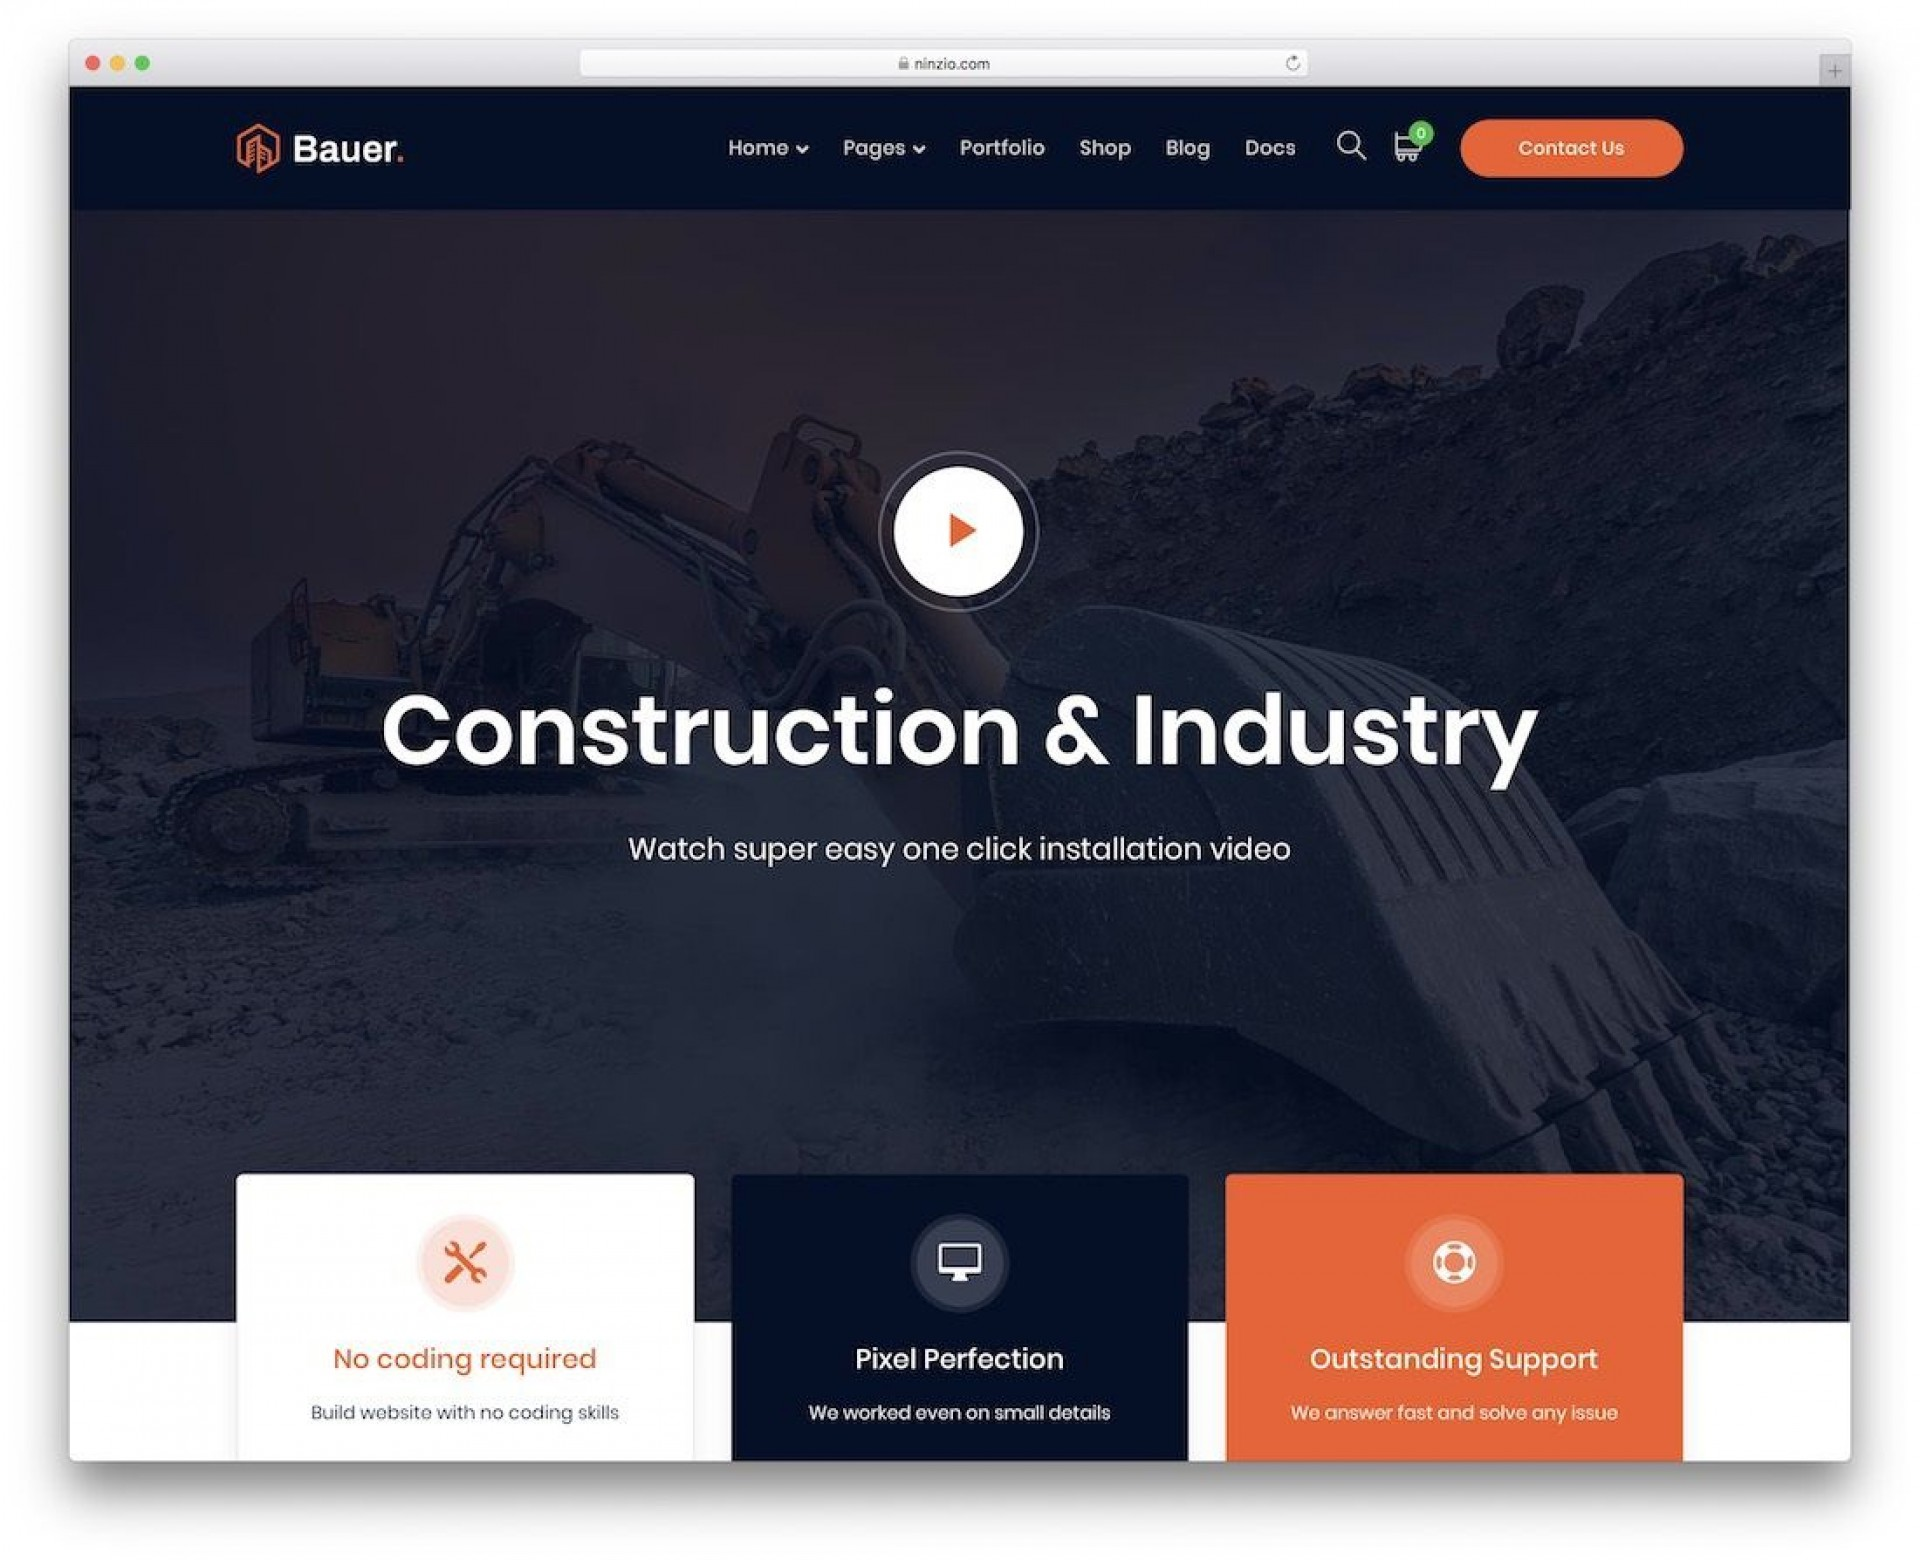 003 Top Government Website Html Template Free Download Inspiration  With Cs1920